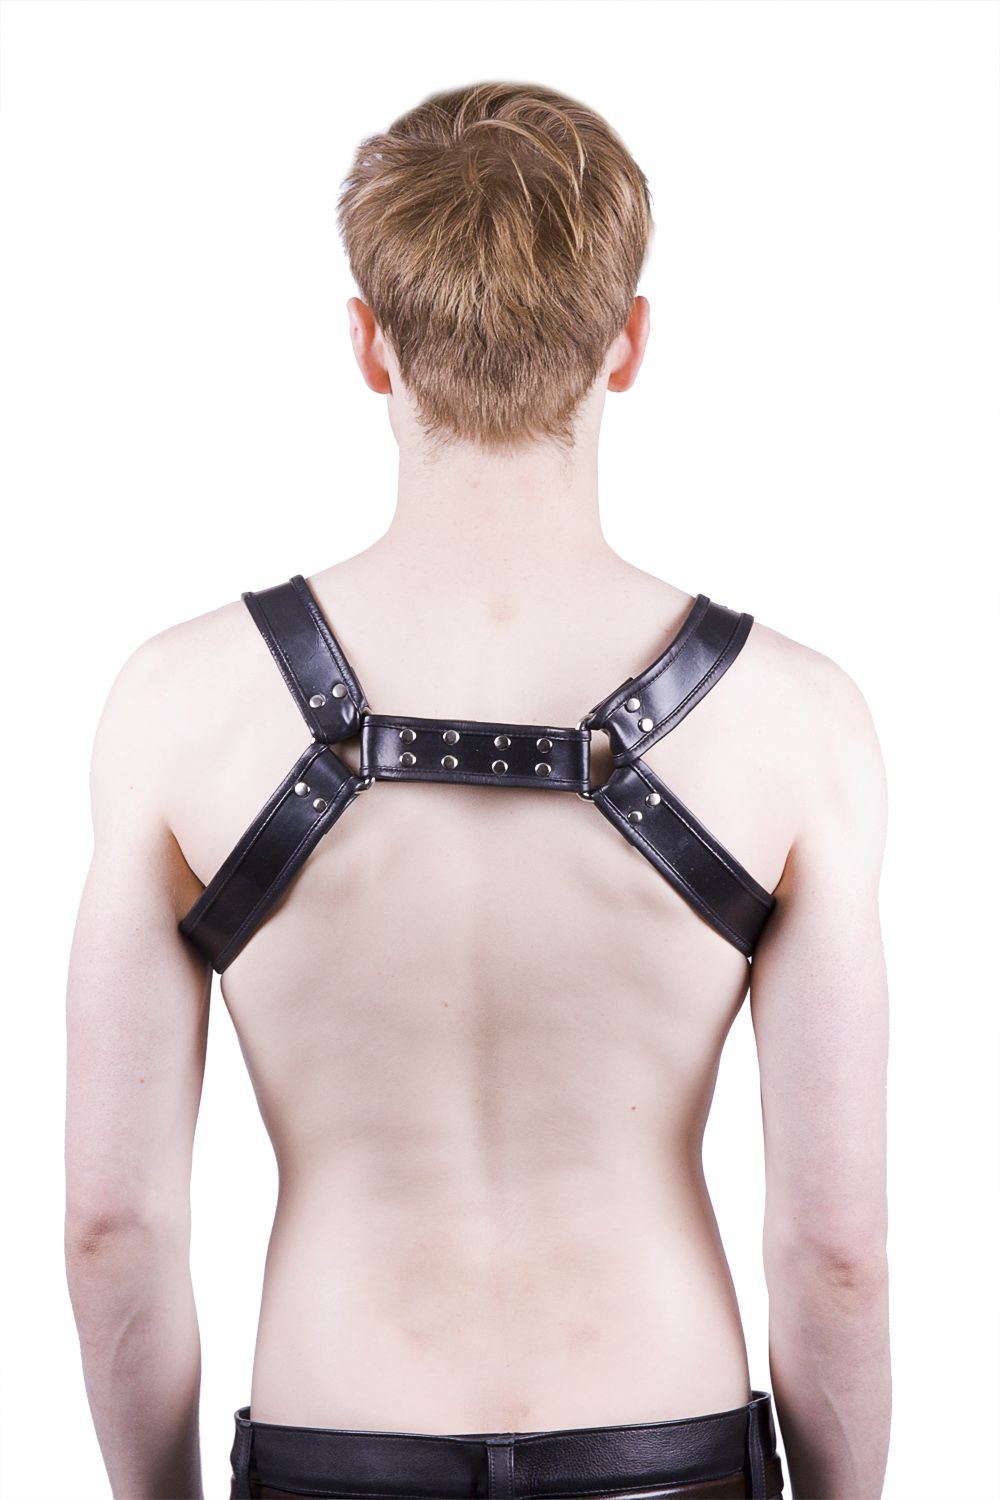 Decorative Cock Ring Mens Body Harness Chest Harness Is Full Leather And Easily